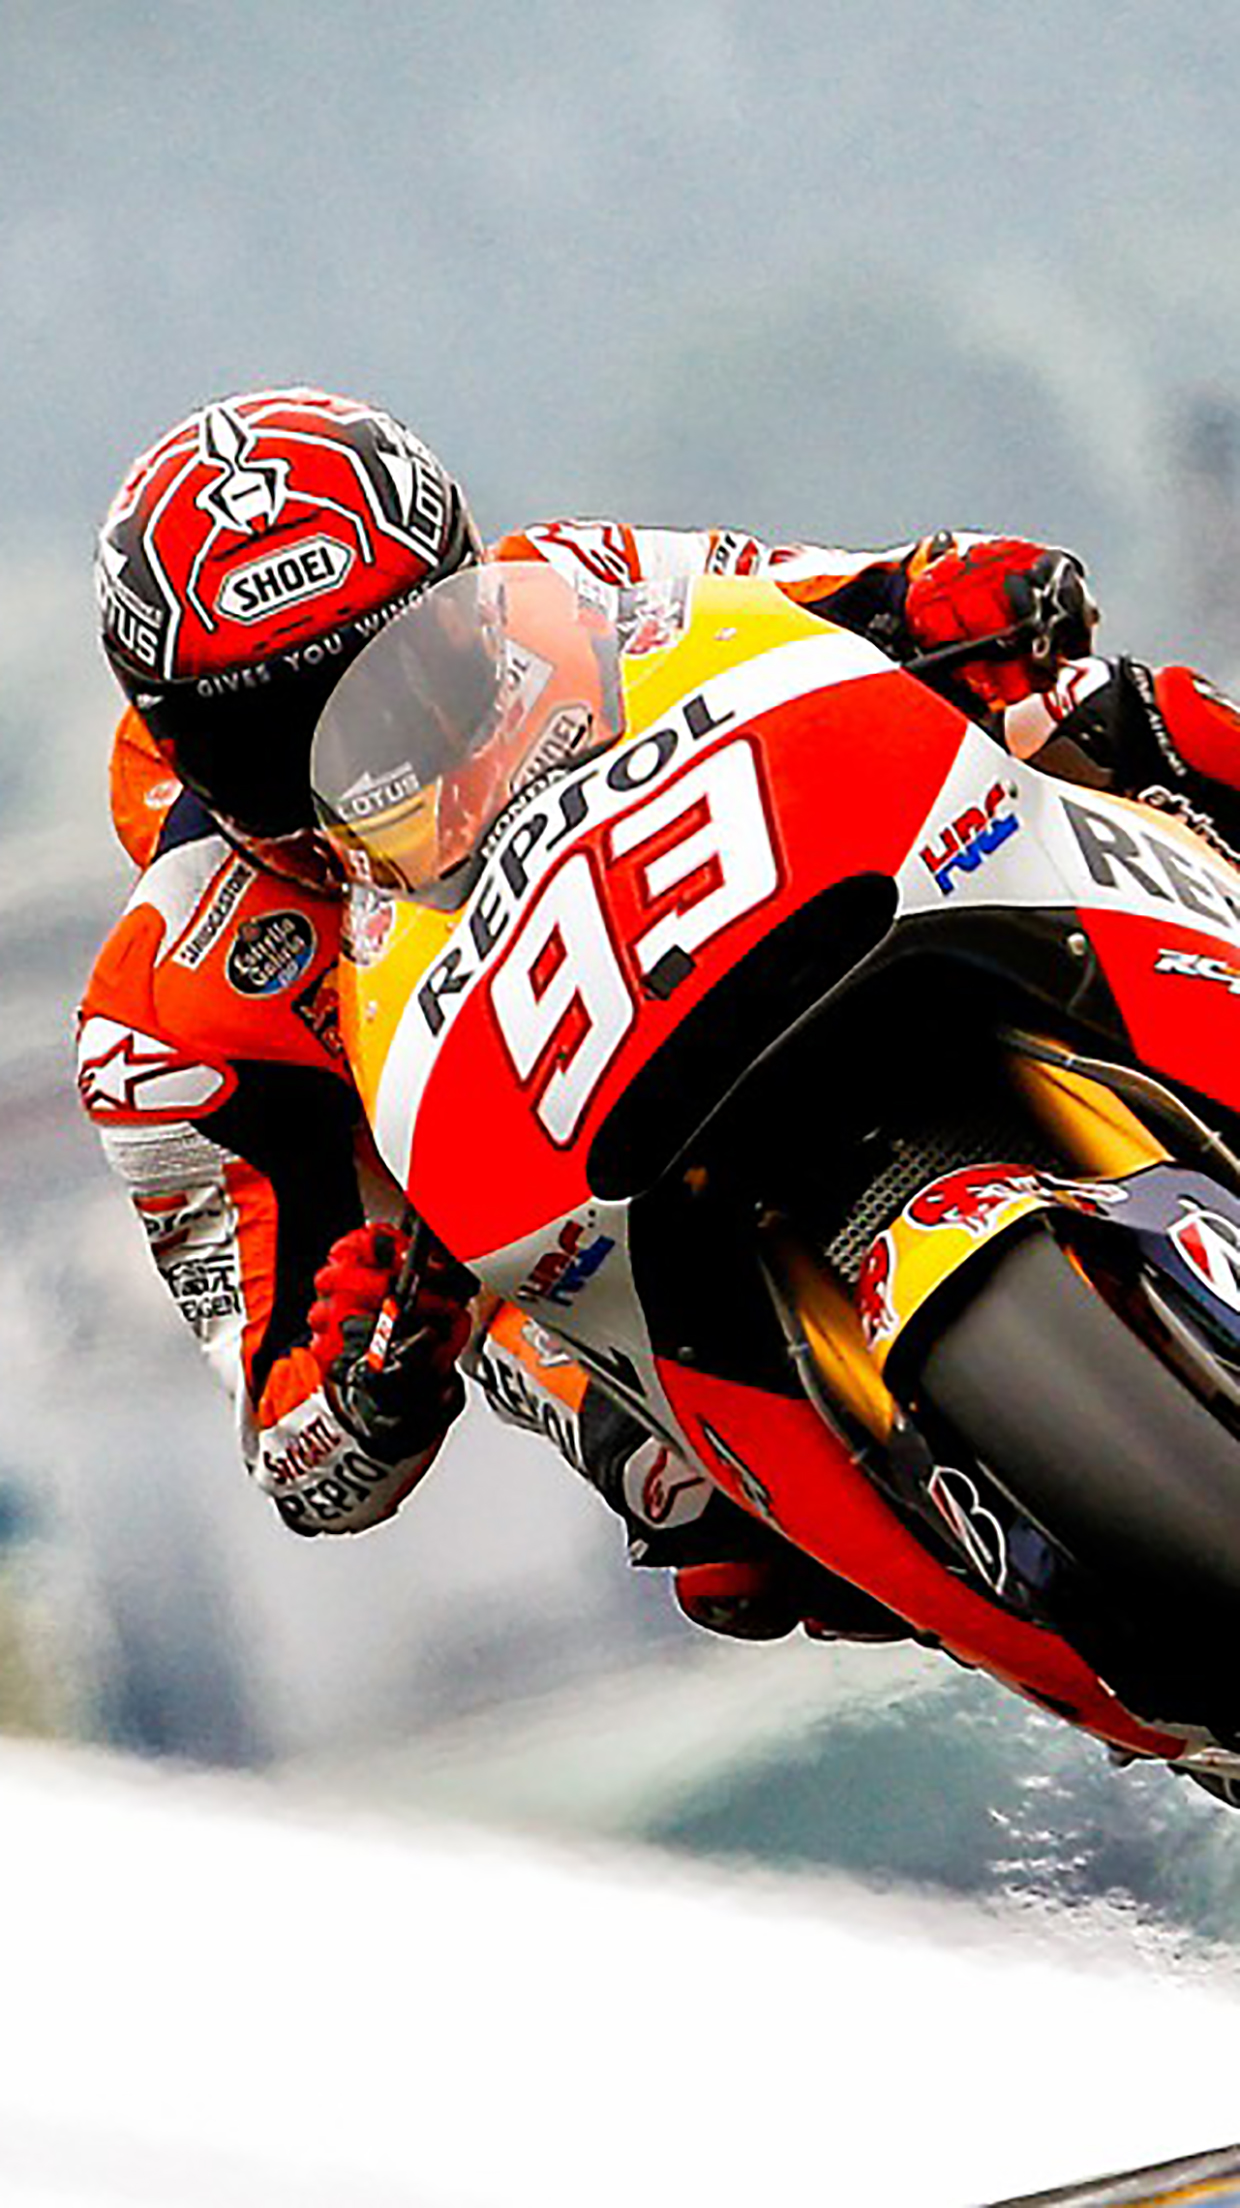 MotoGP (1) Wallpaper for iPhone X, 8, 7, 6 - Free Download on 3Wallpapers